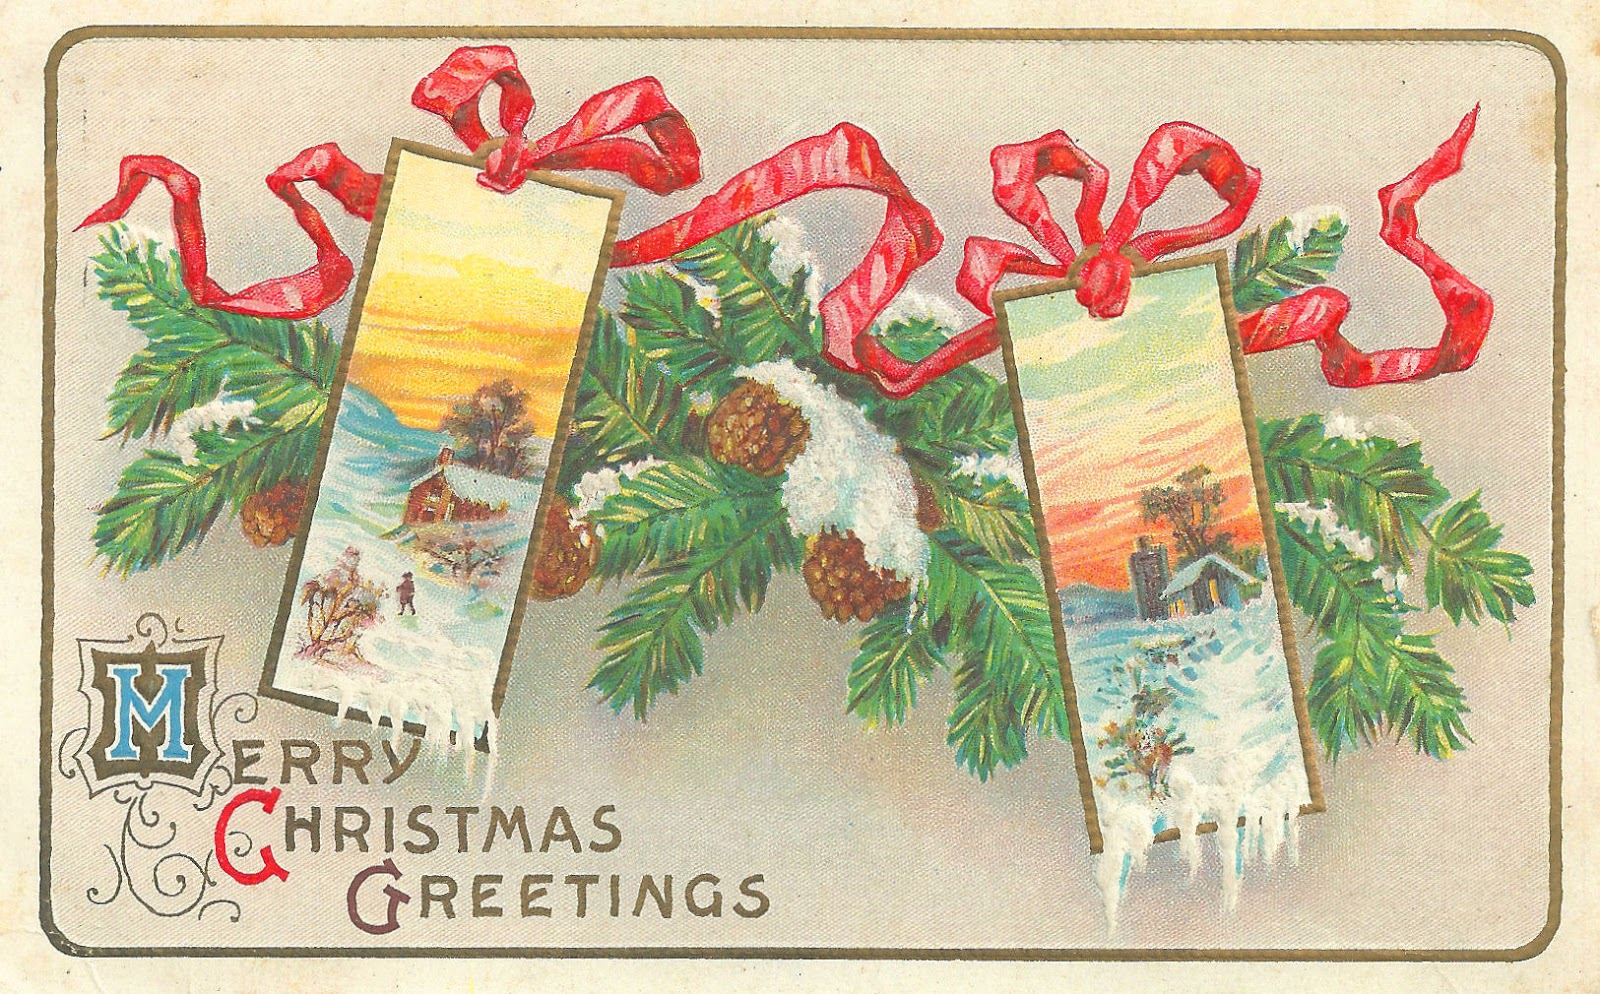 Free printable vintage christmas cards - 421 Best Christmas Postcards Horizontal Images On Pinterest Christmas Postcards Vintage Christmas And Christmas Art